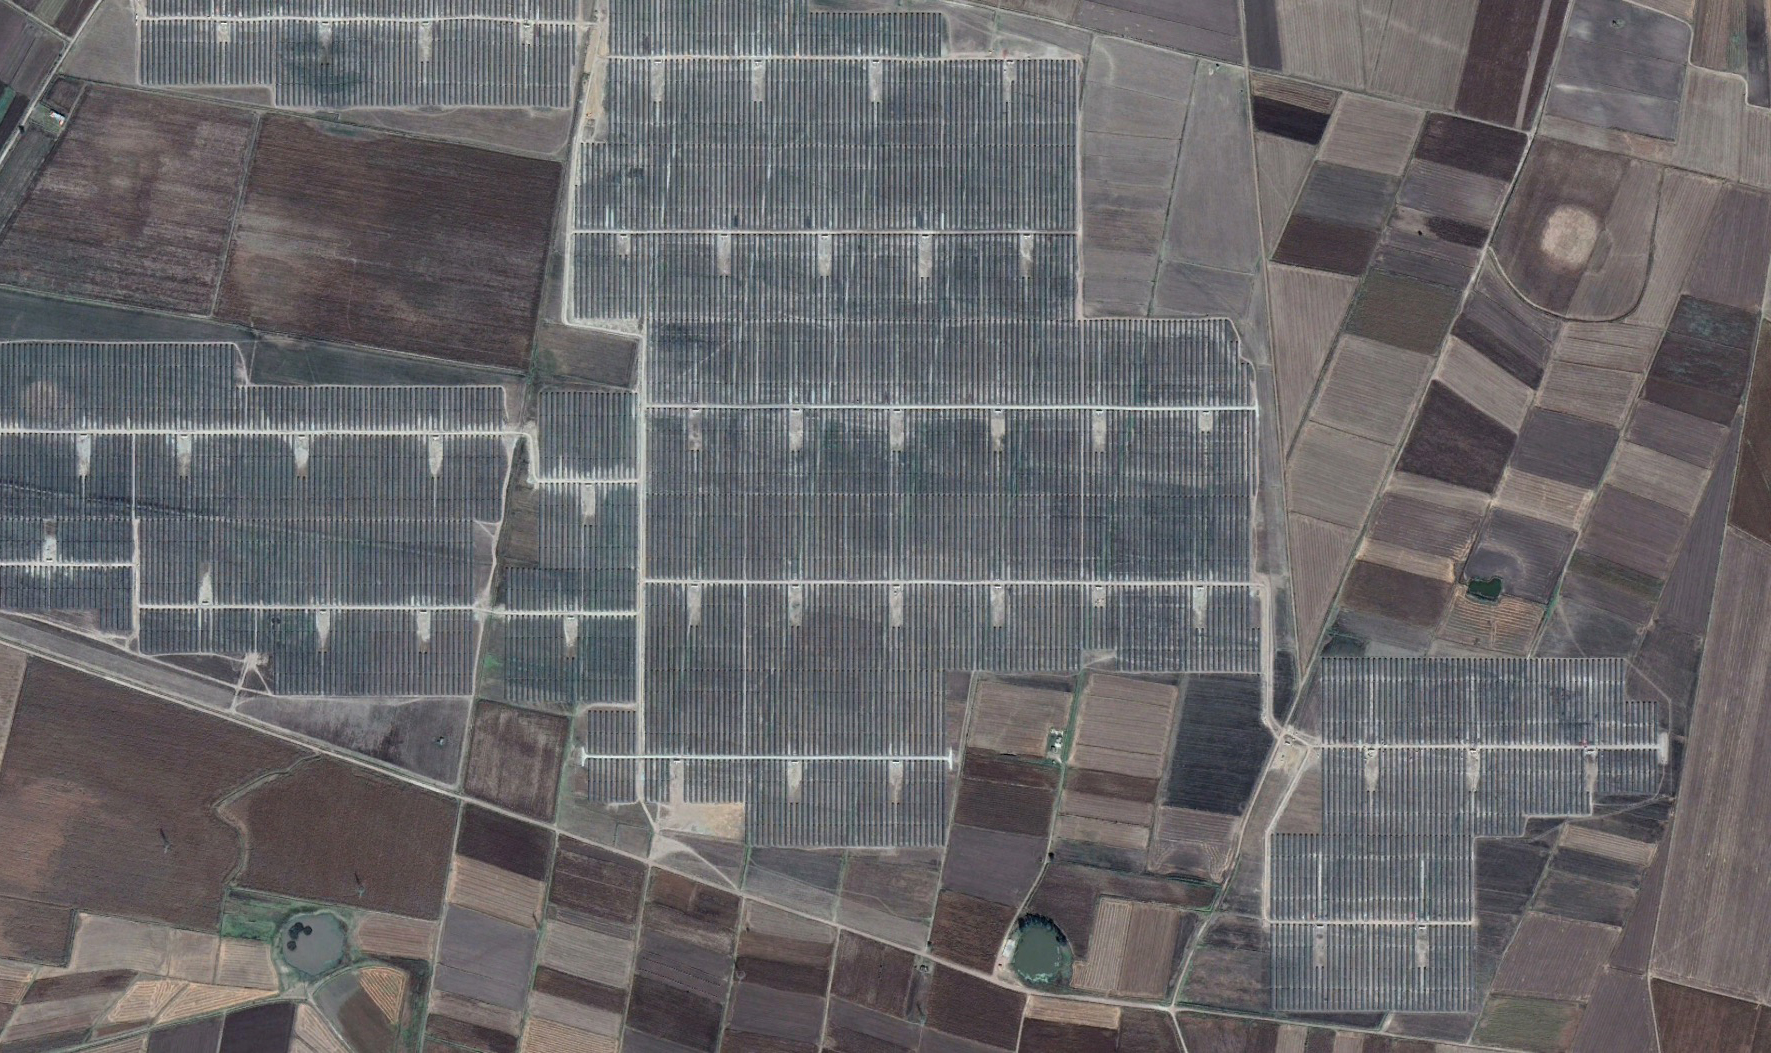 Super-Size Solar Farms Are Taking Over the World